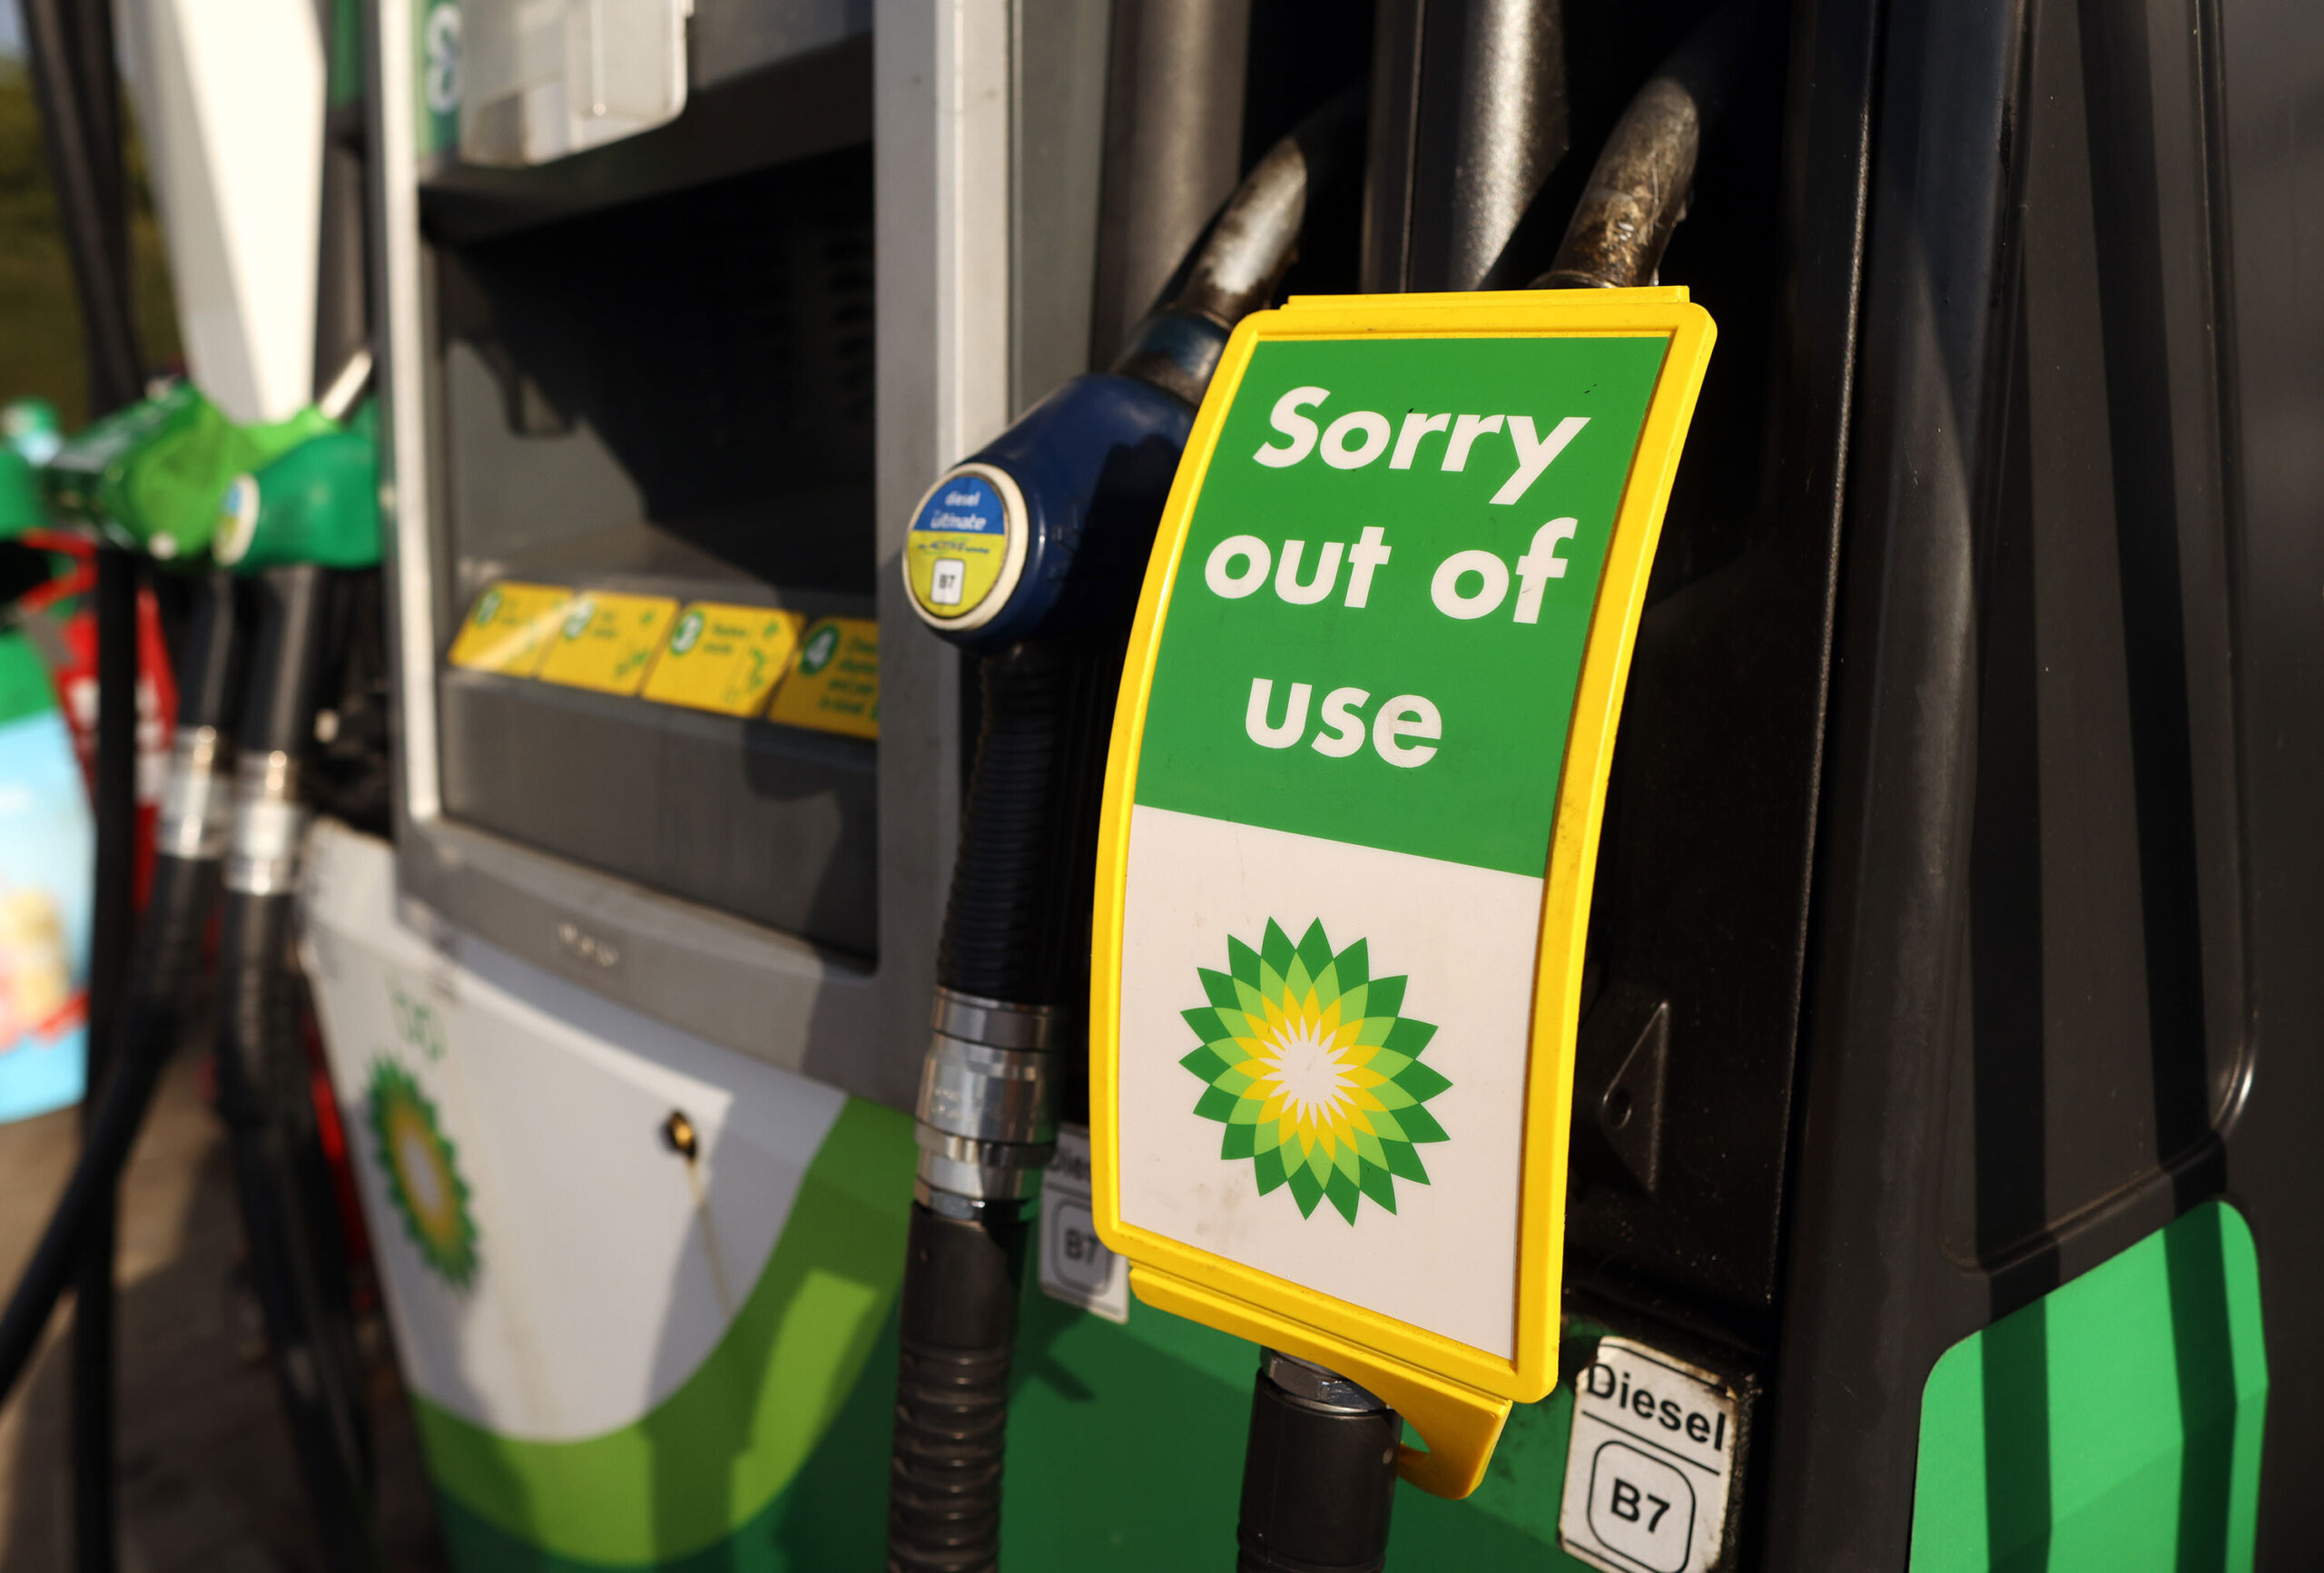 <i>Chris Ratcliffe/Bloomberg via Getty Images</i><br/>A sign reads 'Sorry out of use' on a diesel pump at a BP gas station in Brentwood